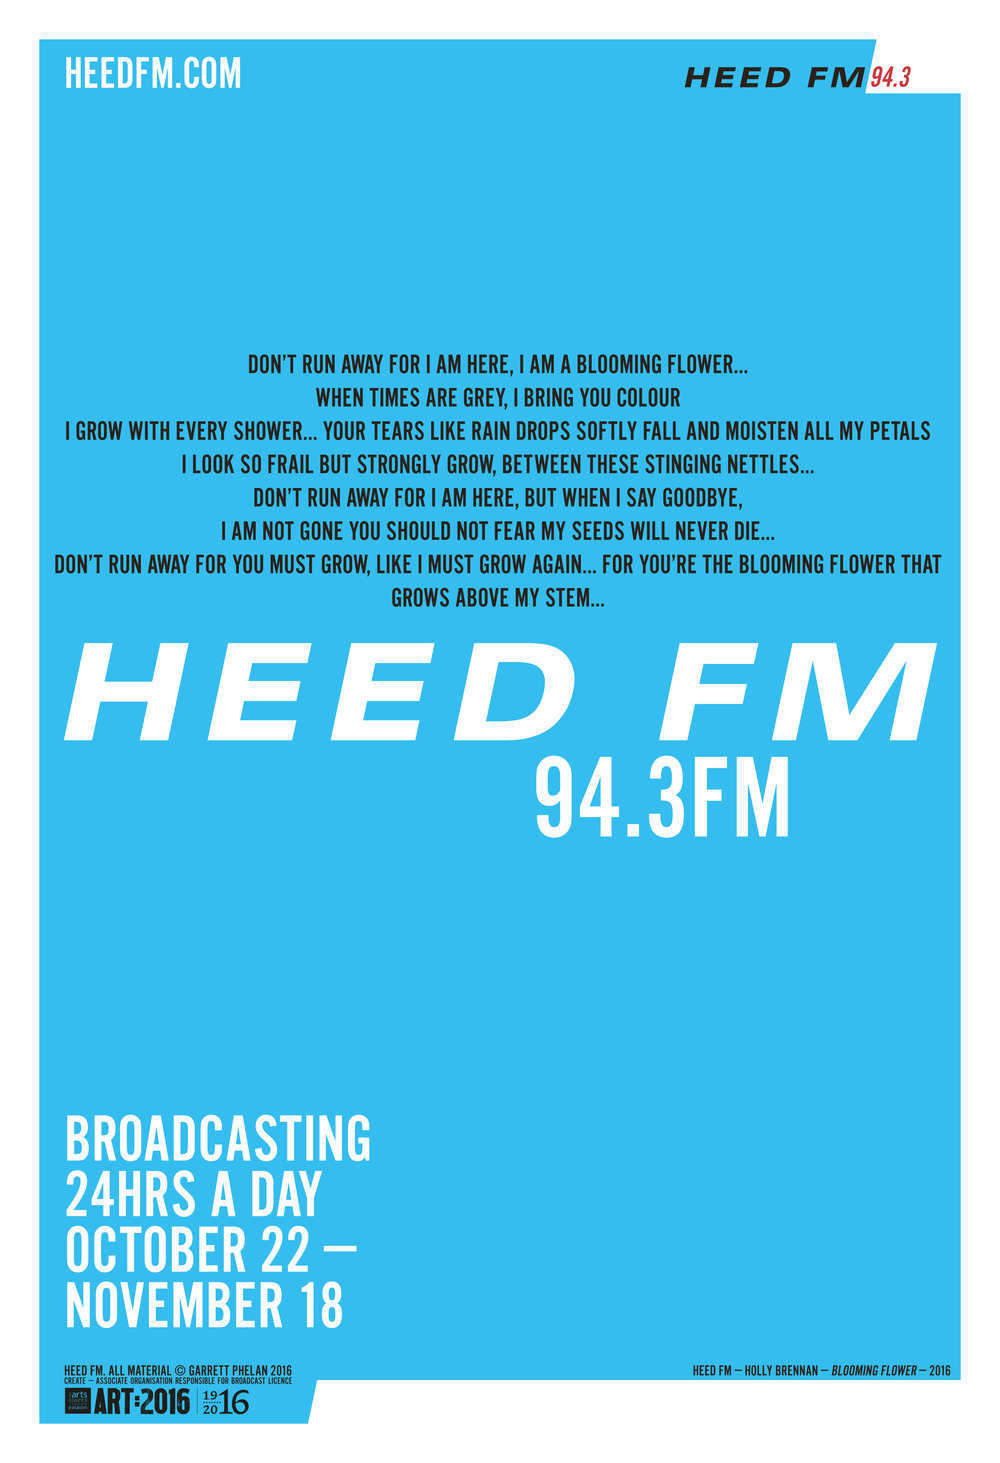 heed fm 4 sheets artwork-3.jpg